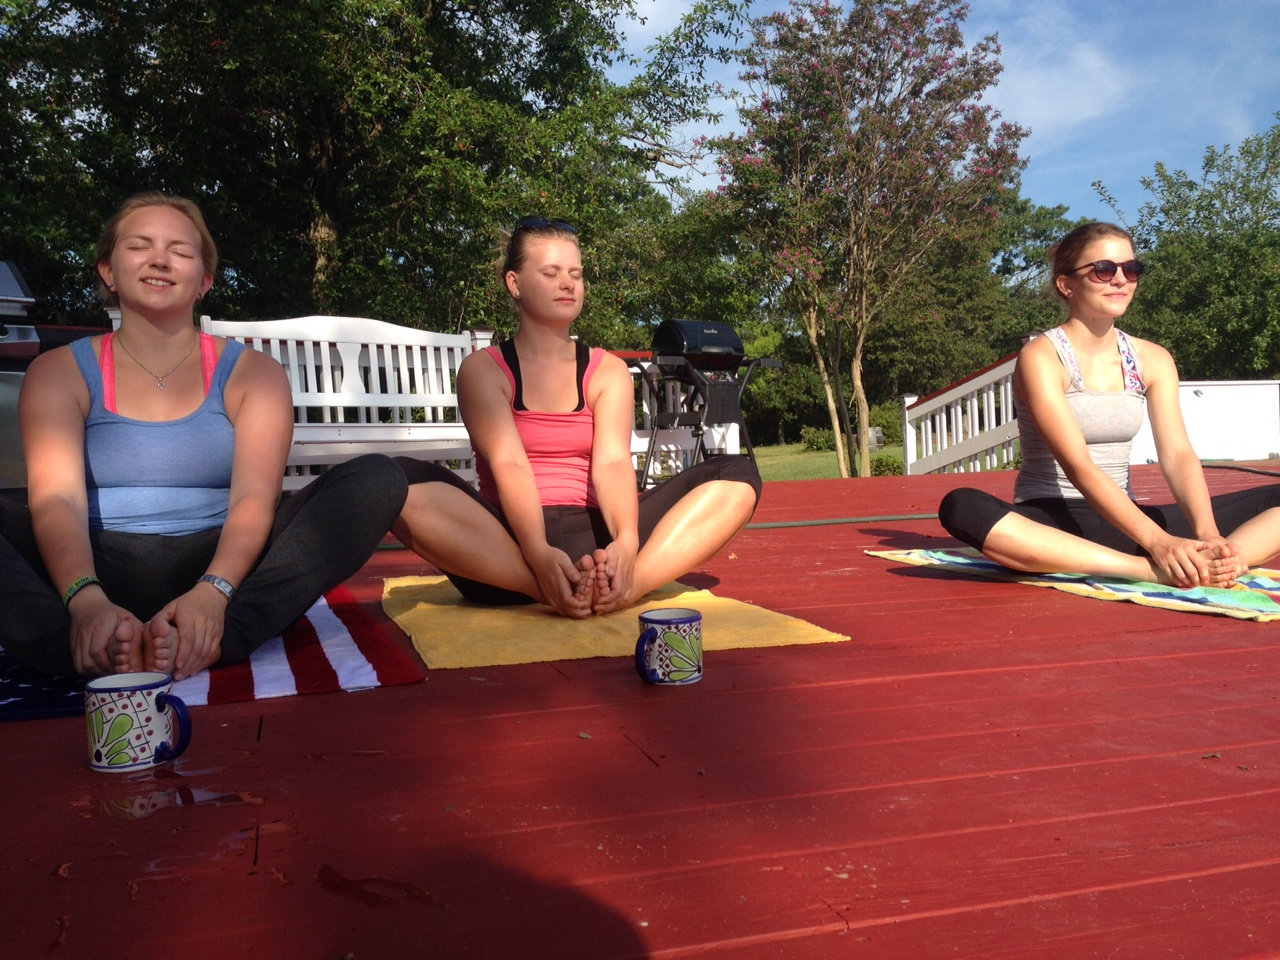 Judith, Sabine and Anna on the pool deck for morning yoga.